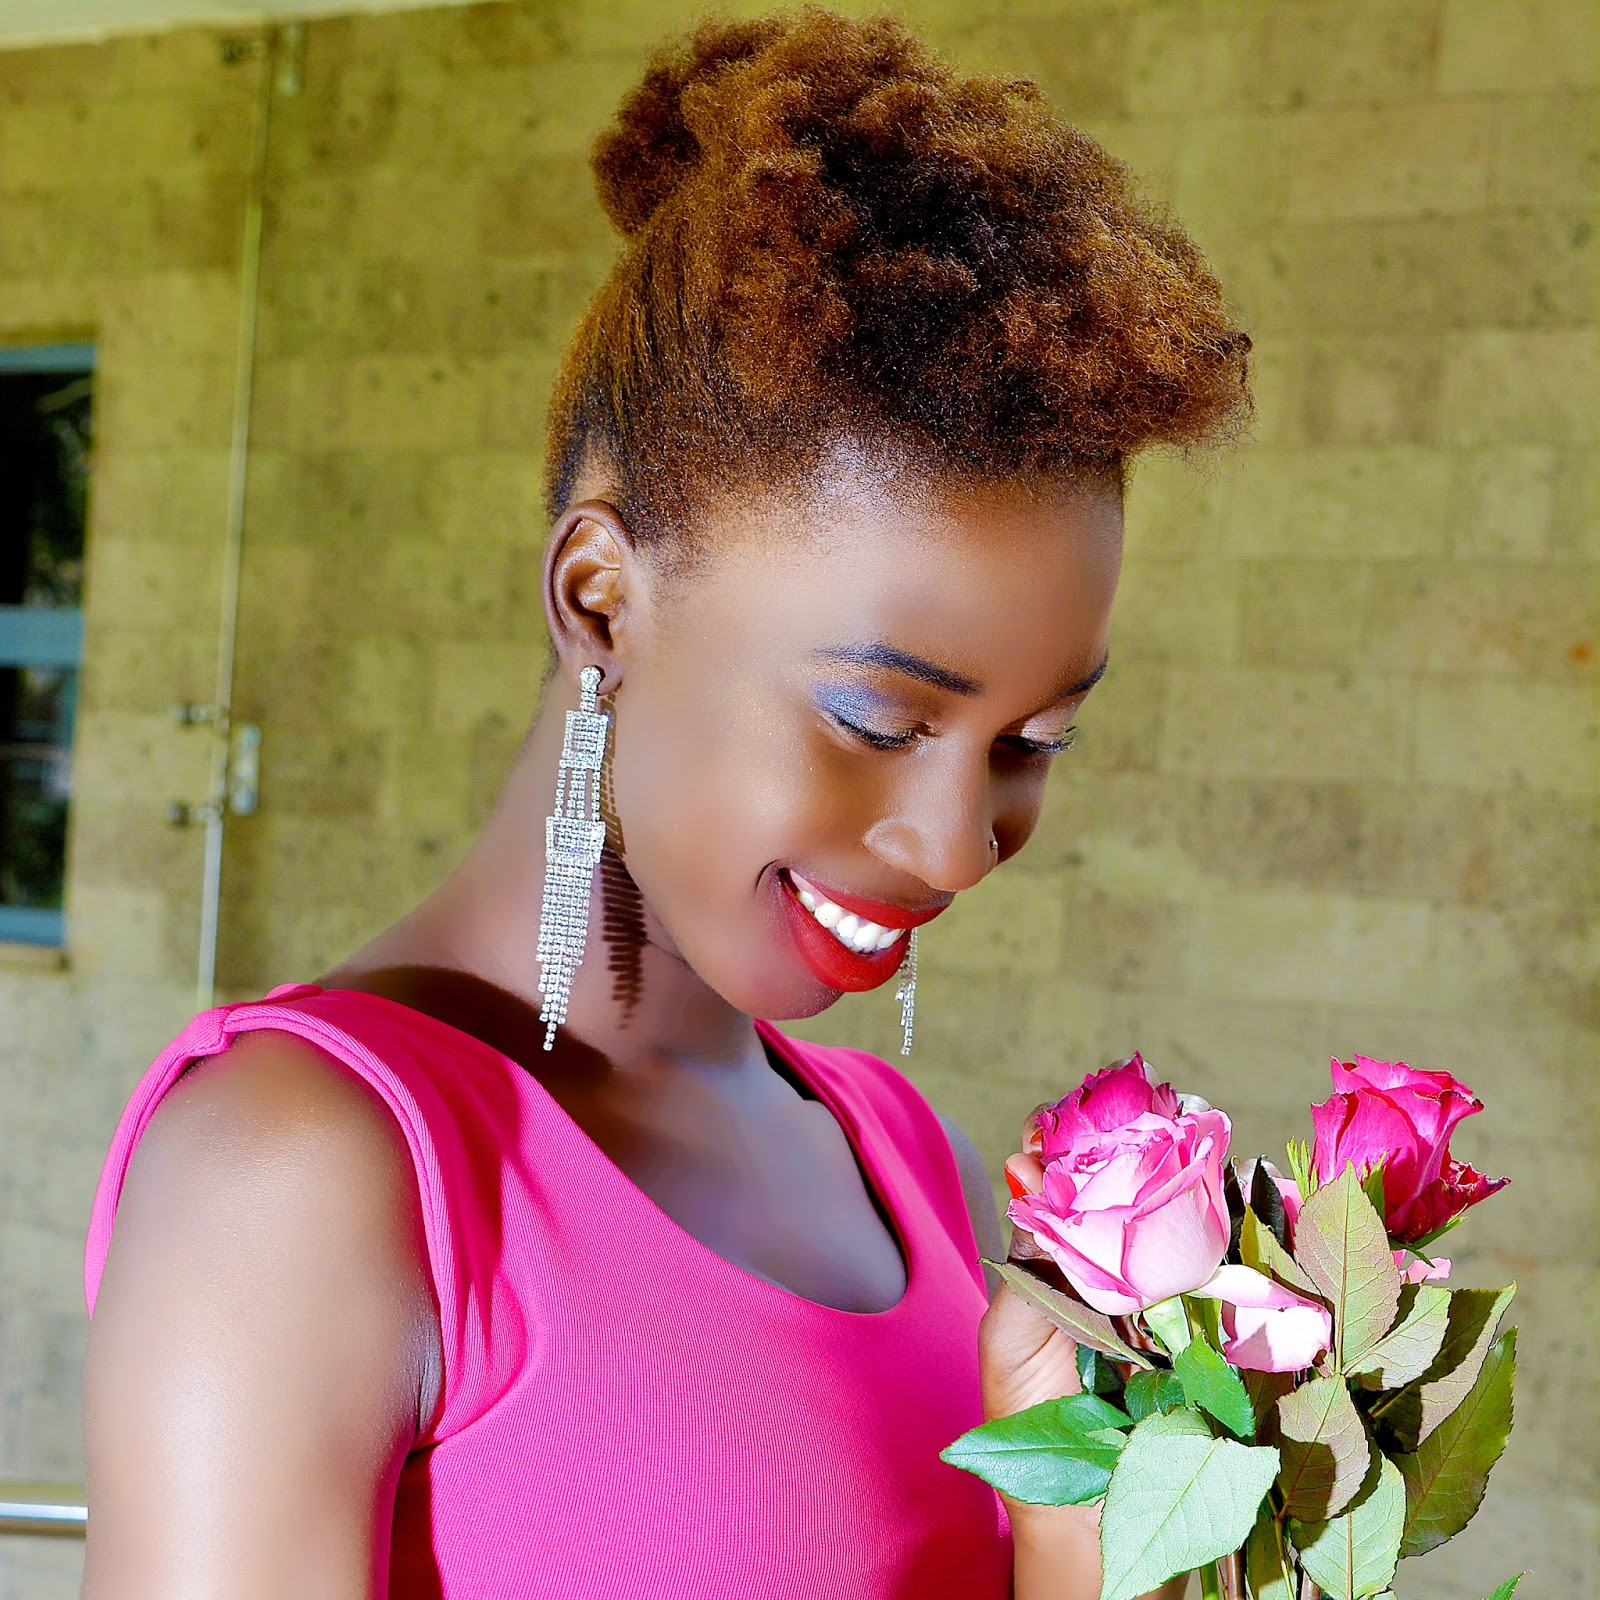 natural hair, type 4c hair, kinky hair, dyed natural hair,natural hair, kenyan fashion blogger, african fashion blogger, fashion blogger kenya, style with ezil, twa hairstyles, how to style my twa, what to do with my type 4c hair, pink dress, bodycon dress, how to style a bodycon dress, sleeveless pink dress